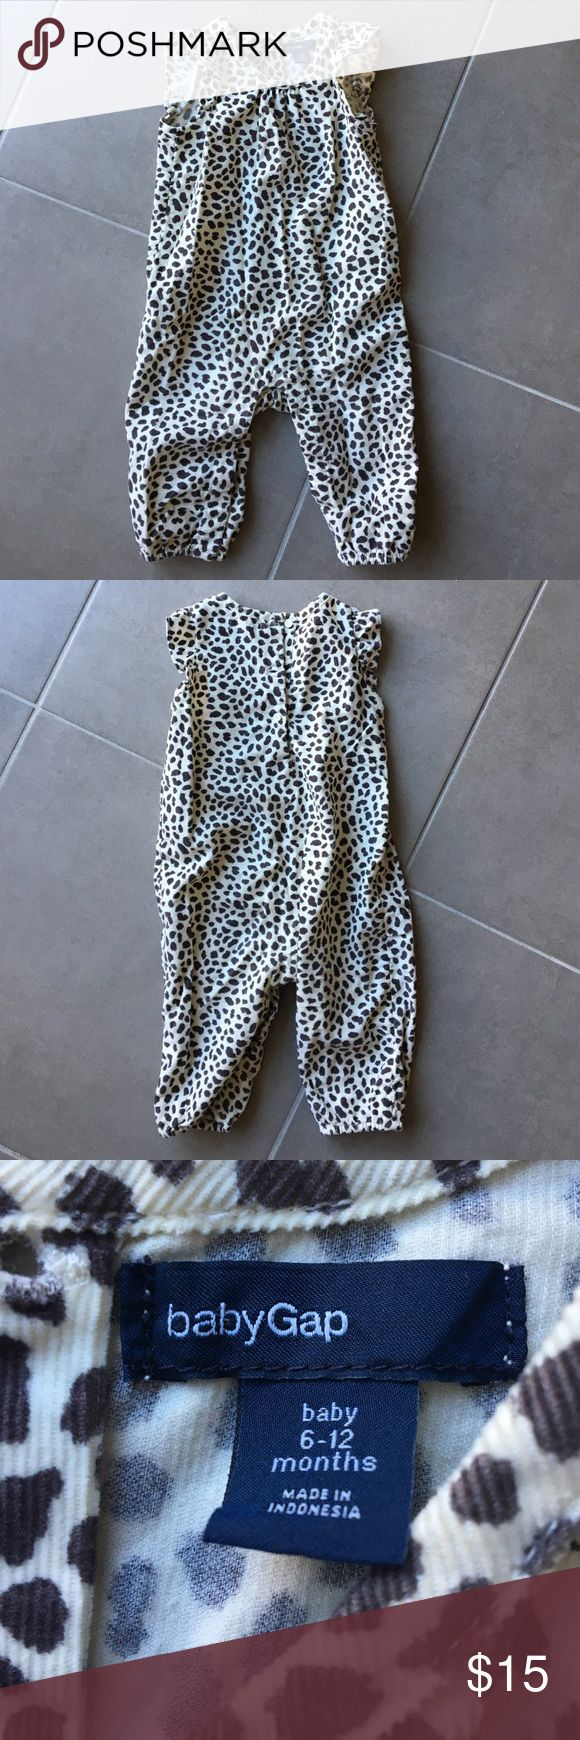 BabyGap animal print jumpsuit Corduroy animal print with ruffle sleeves. Snap enclosure with buttons on back. Excellent condition. babyGap Bottoms Jumpsuits & Rompers